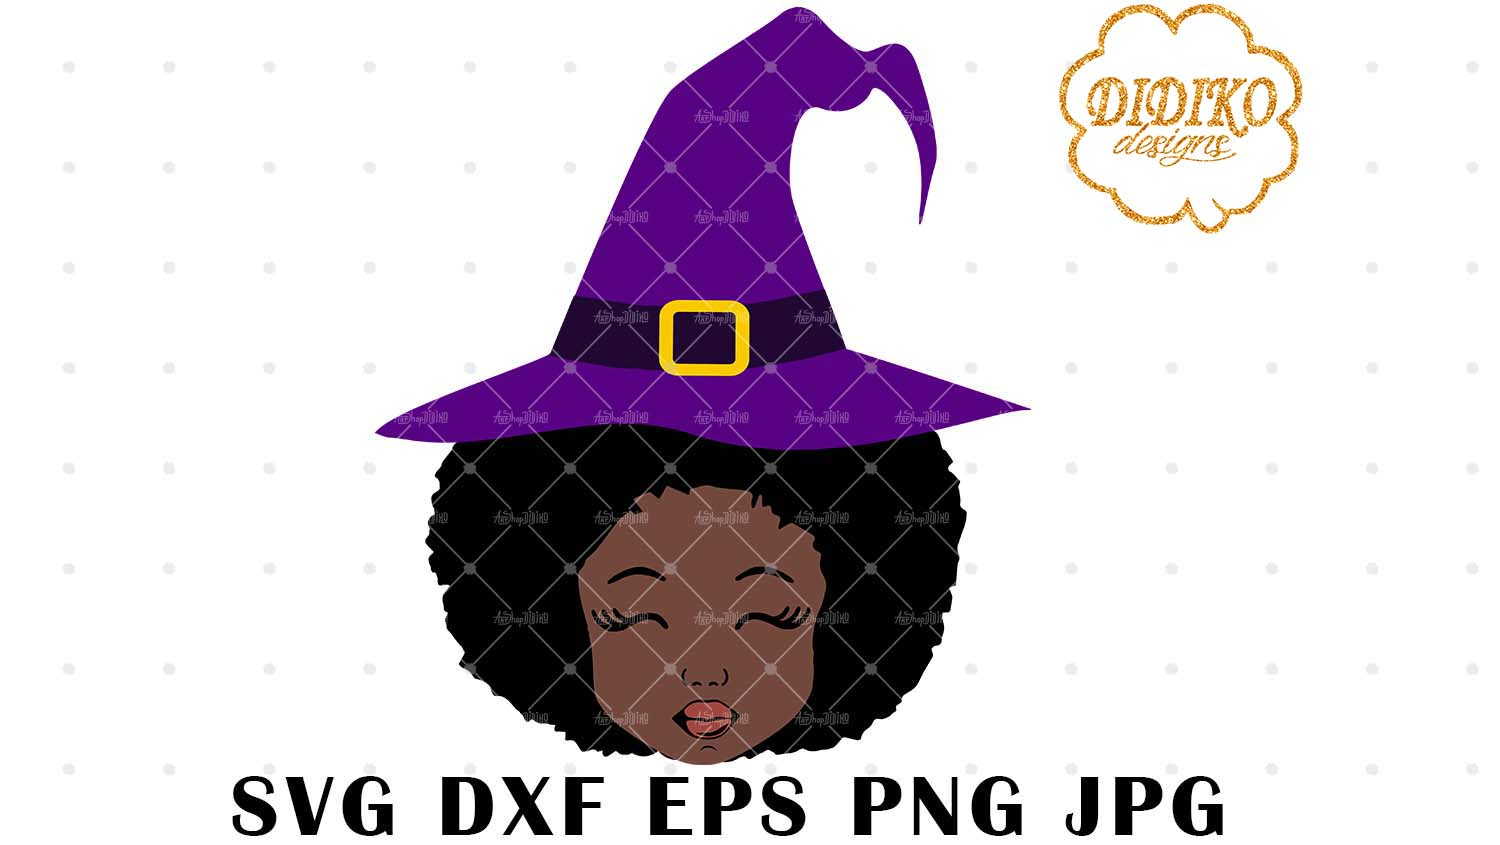 DIDIKO designs Afro Girl Halloween Witch SVG